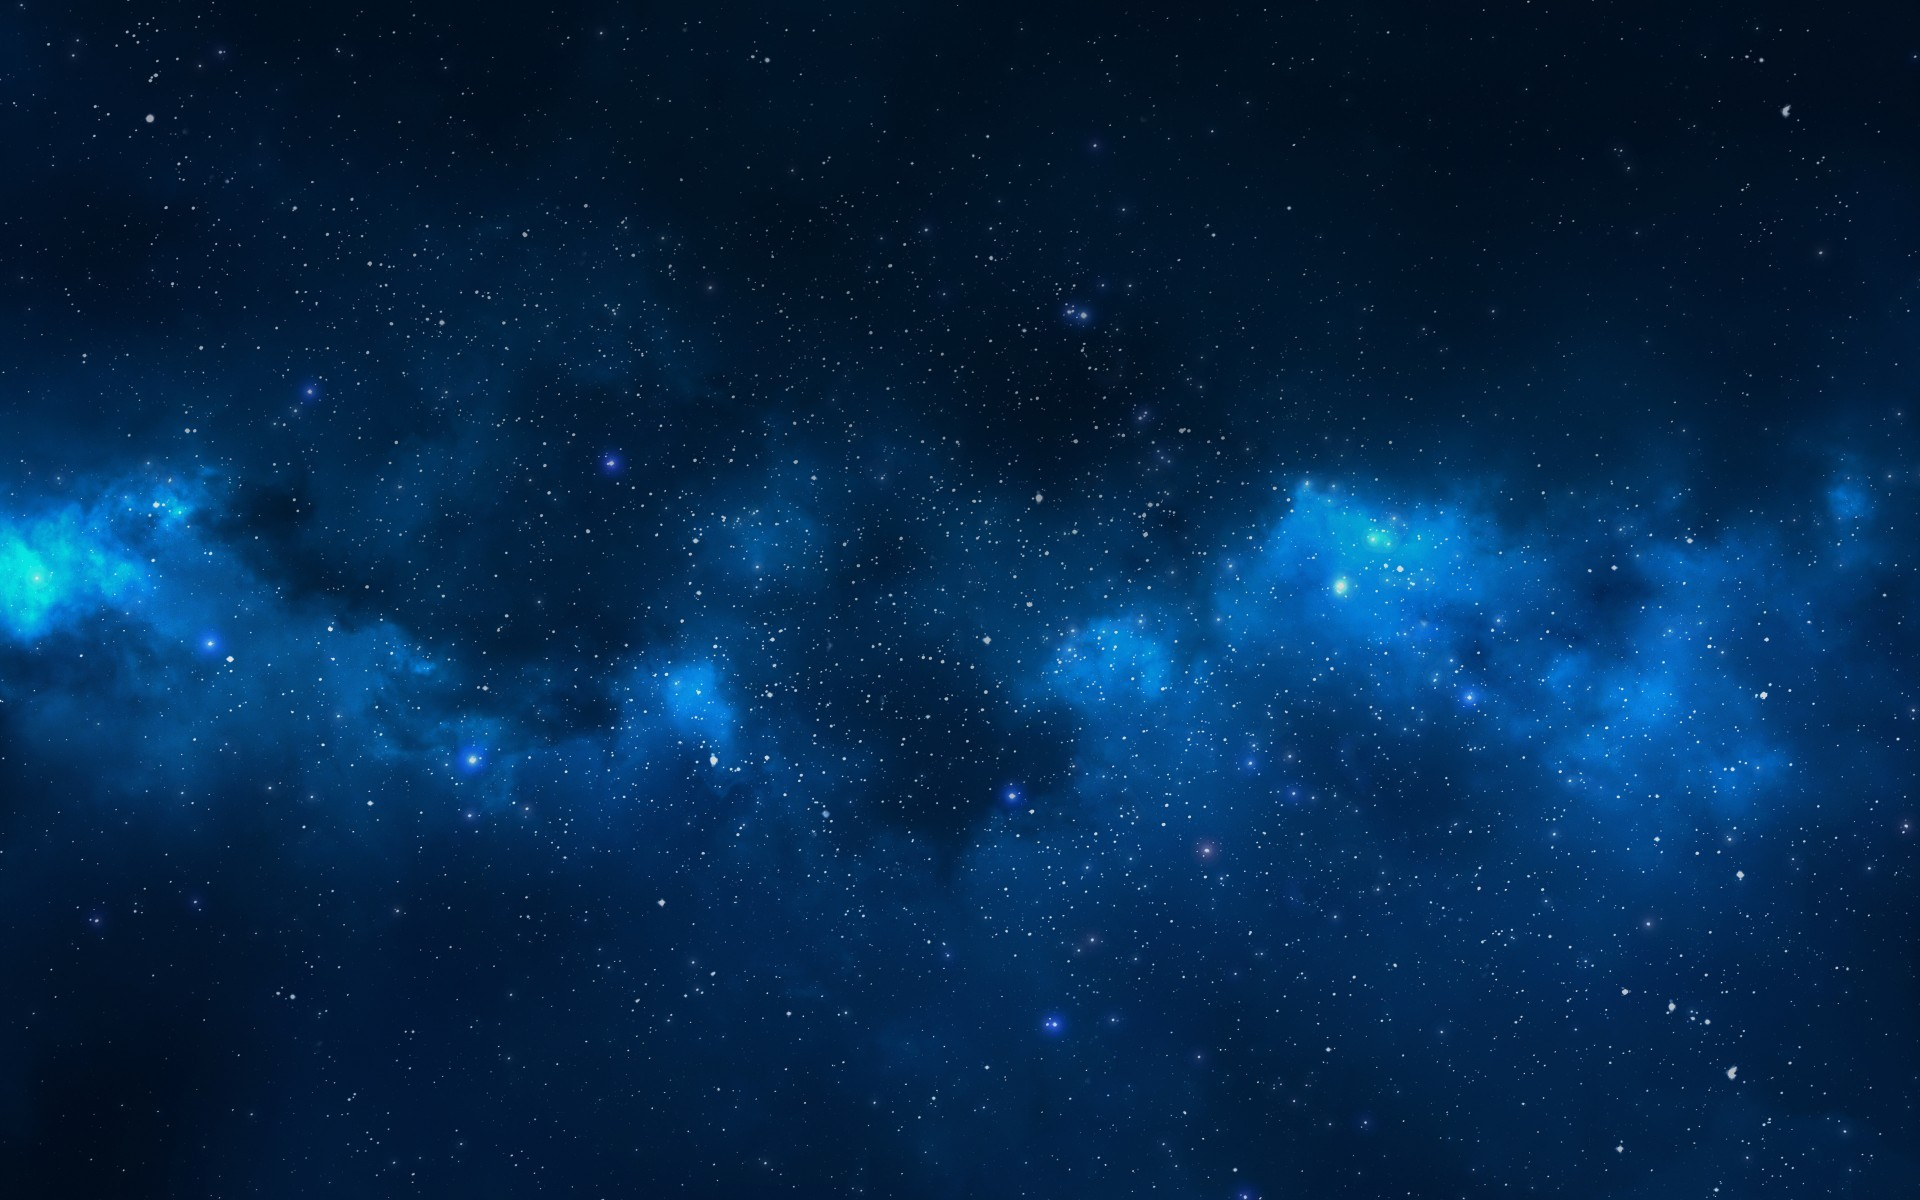 Summer Night Sky Wallpaper Images amp Pictures   Becuo 1920x1200